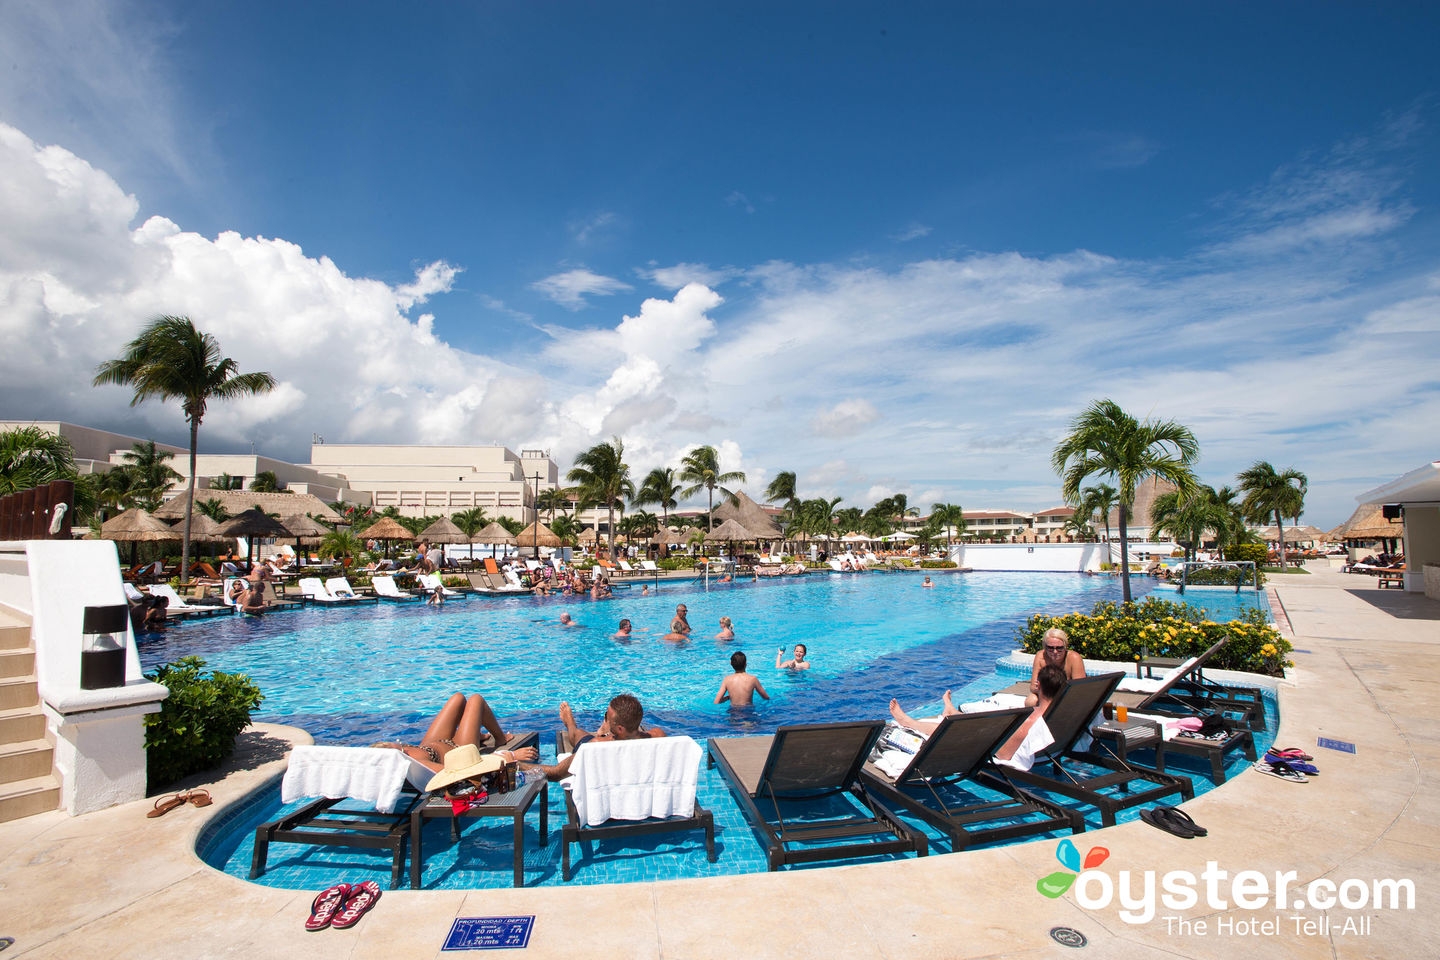 The Best Family Spring Break Hotels in Cancun (updated 2019